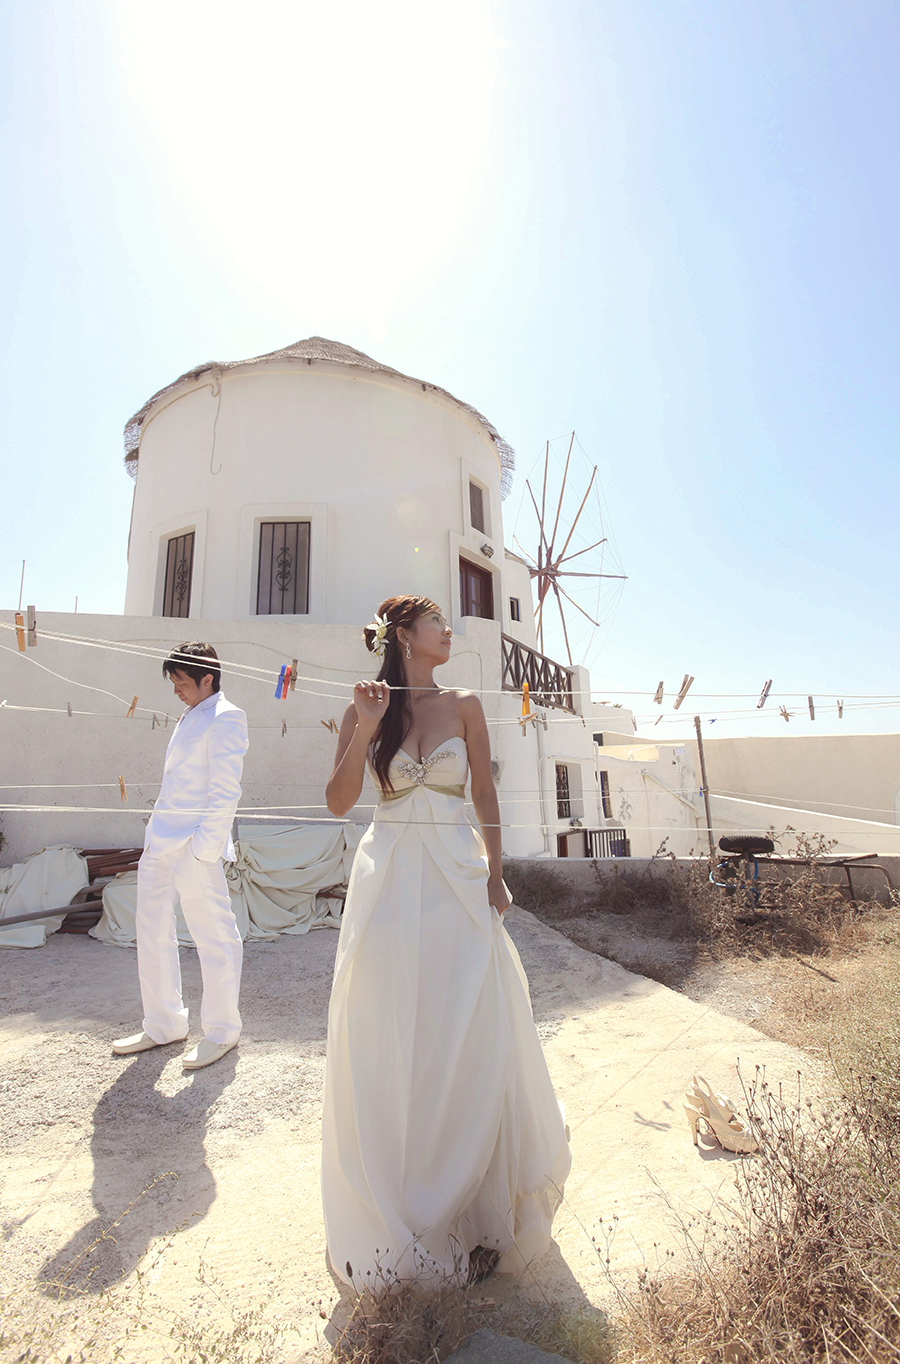 santorini greece . wedding photography by kurt ahs . 3058.jpg